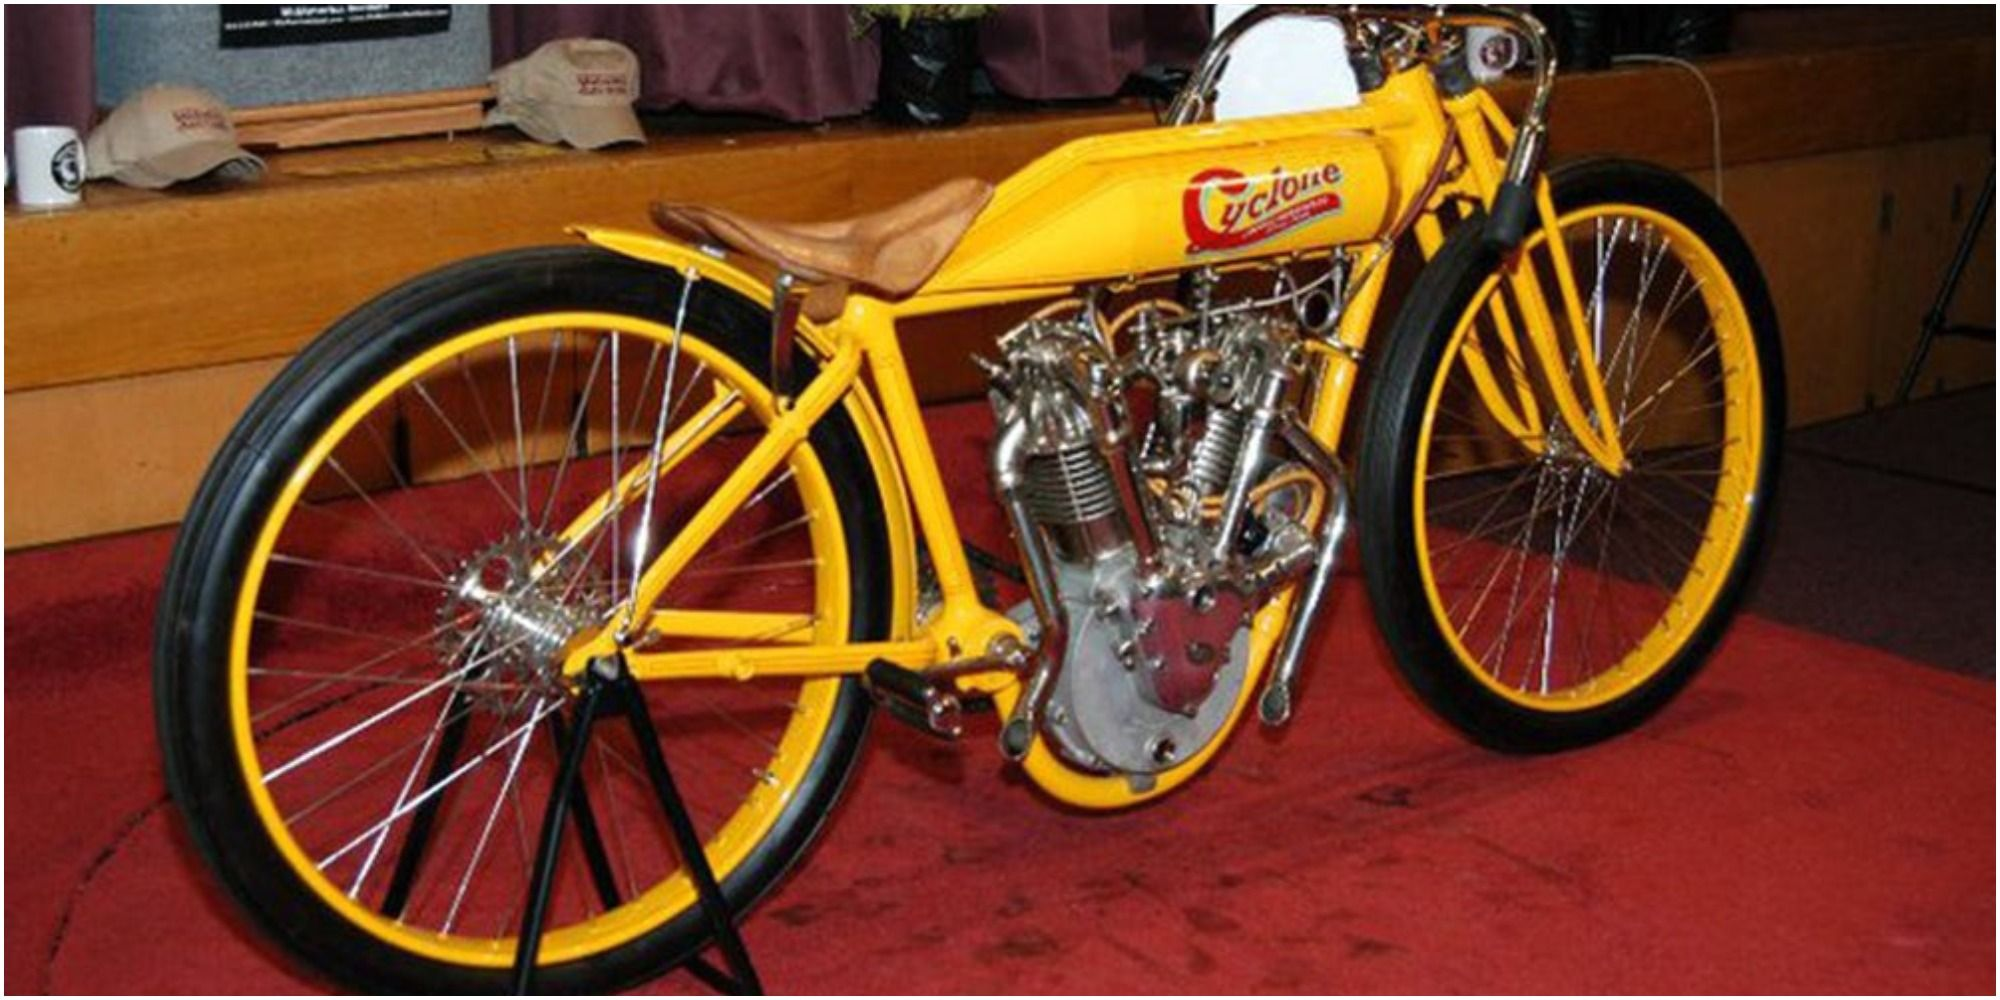 10 Of The Most Expensive Motorcycles Ever Sold At Auction